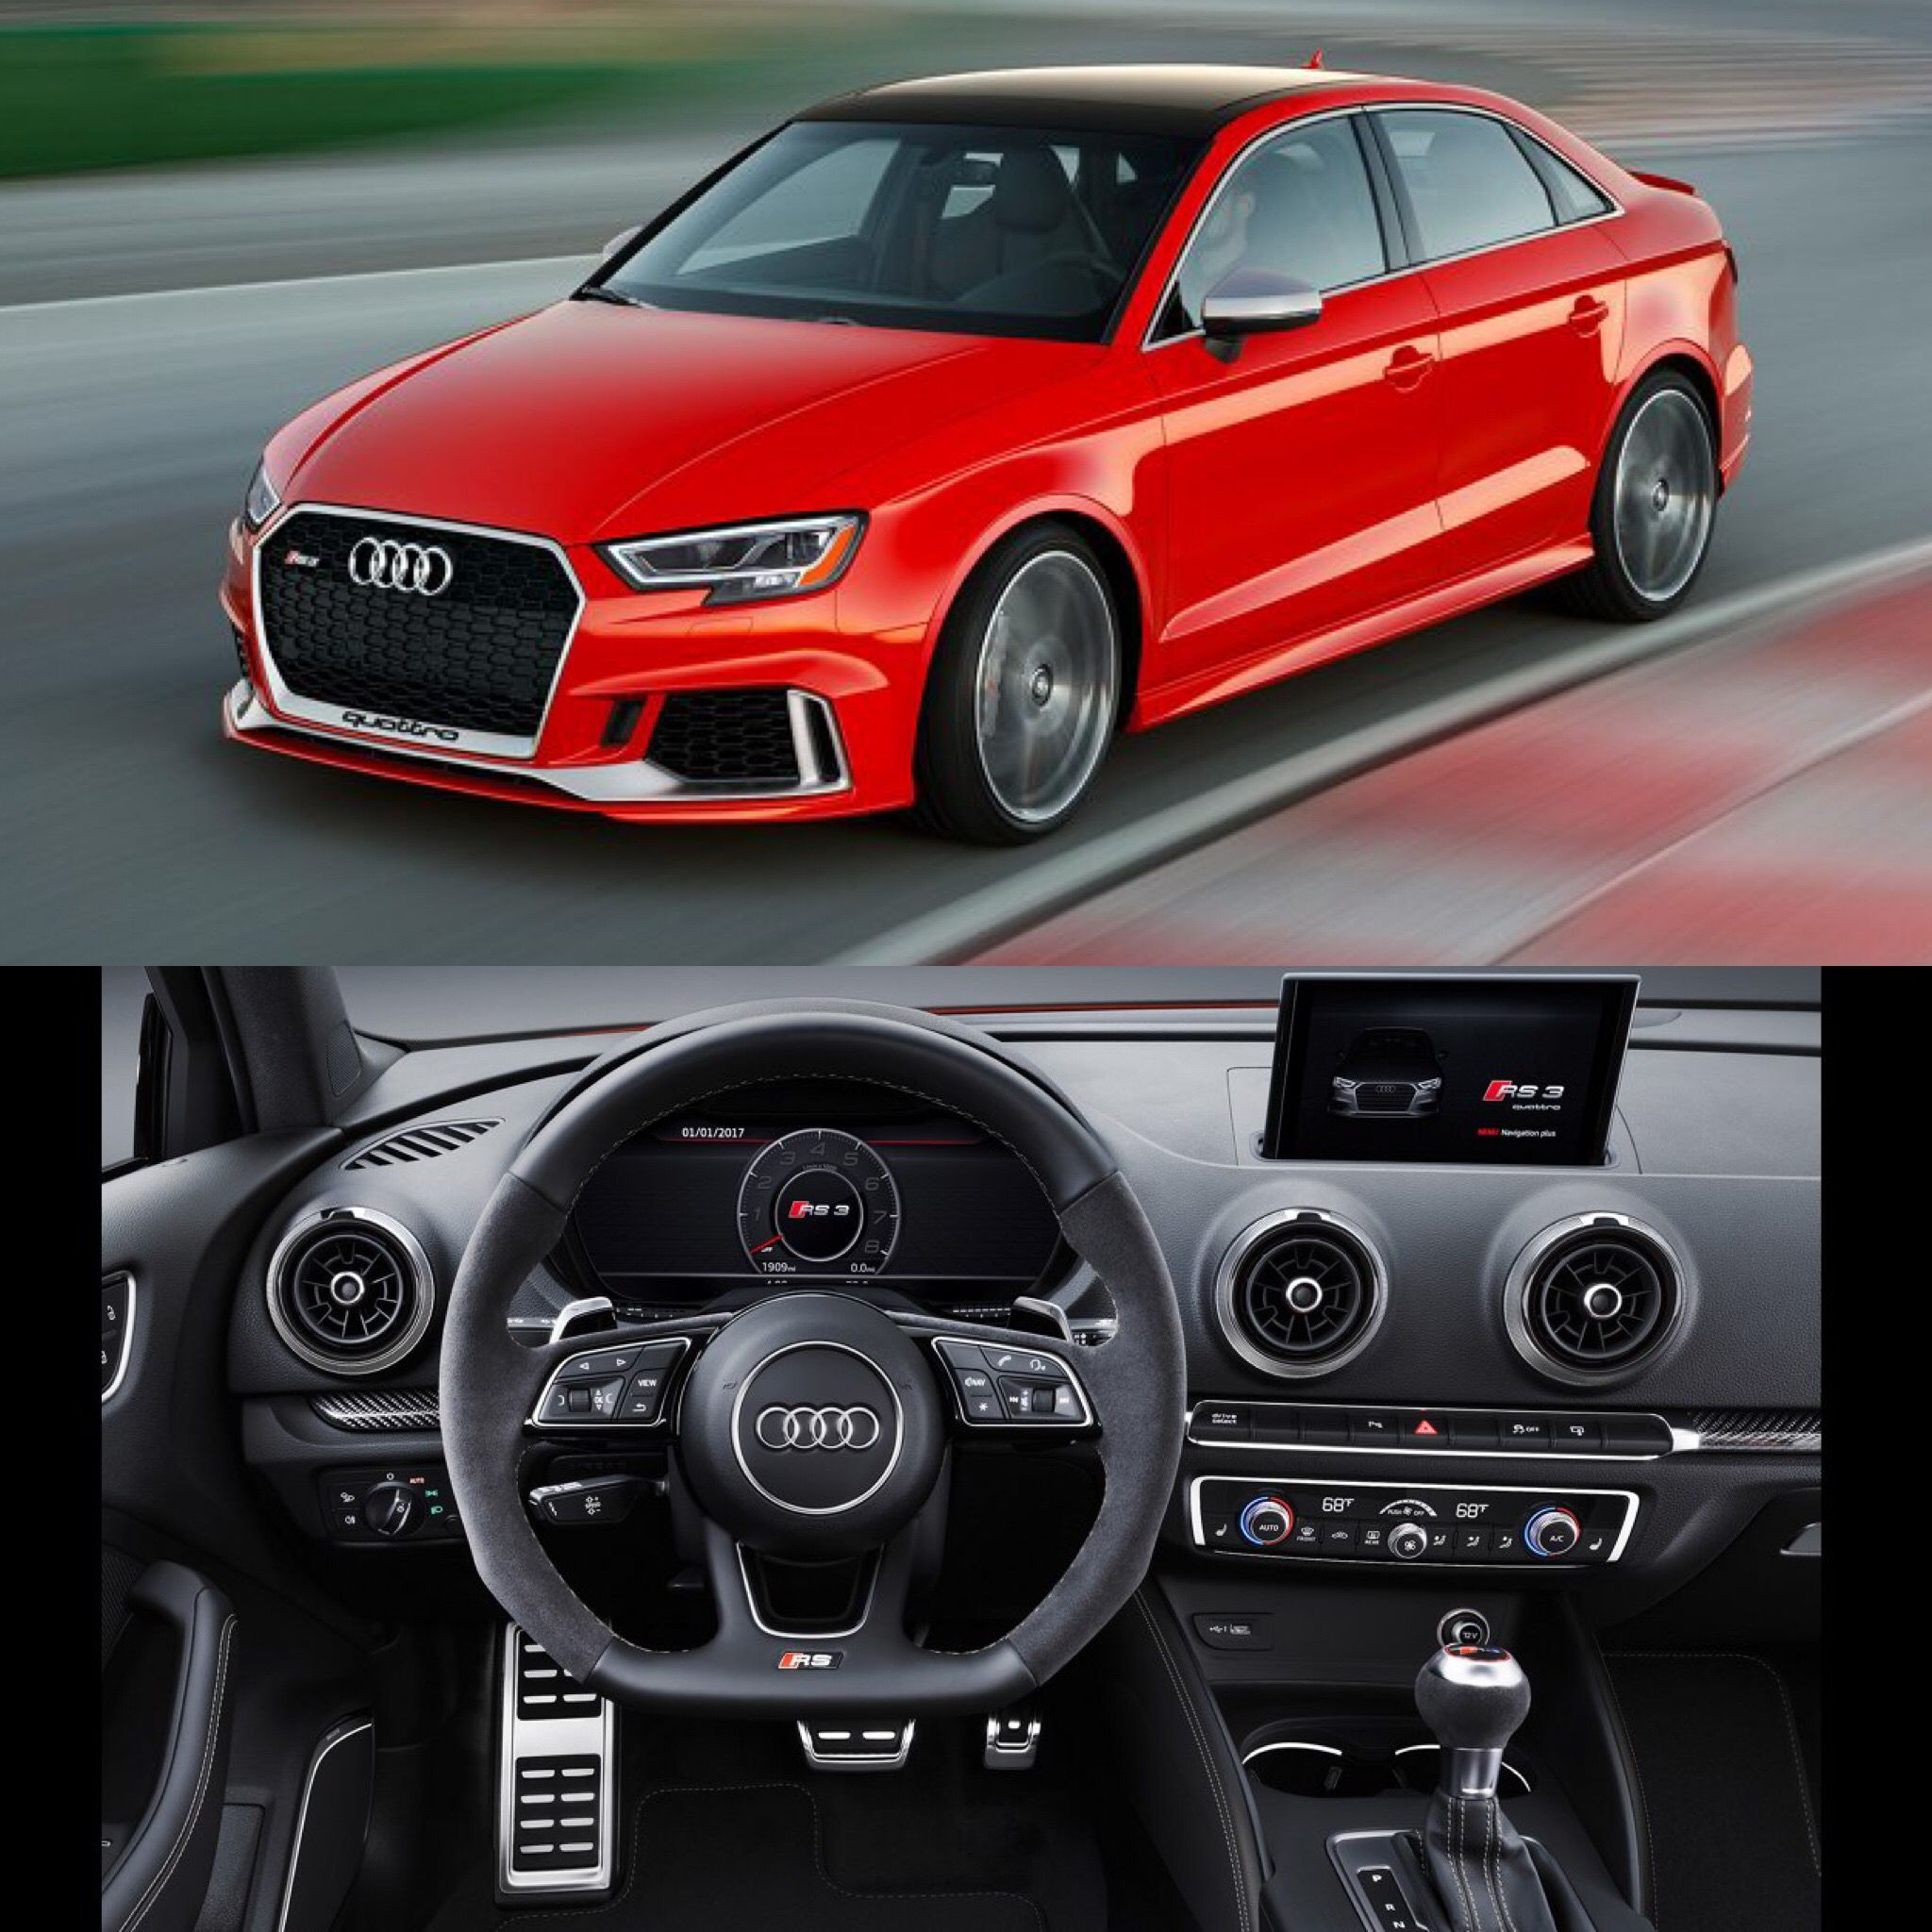 The Audi RS Sedan Revolutionizing Performance Learn More About - Audi car price low to high